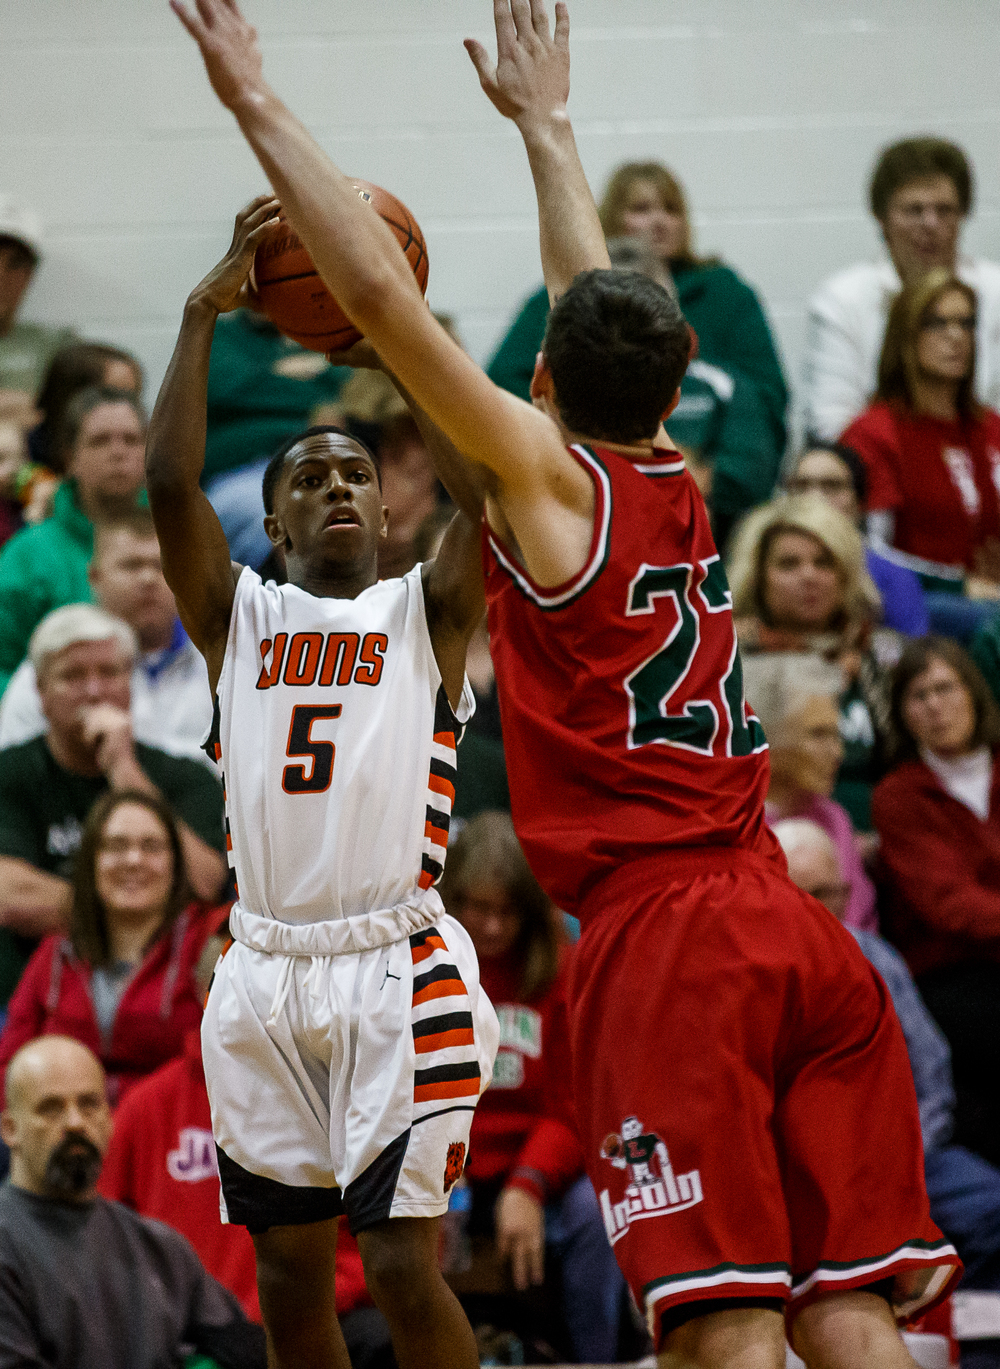 Lanphier's Xavier Bishop (5) fires off a shot in front of Lincoln's Gavin Block (22) in the first half at Lober-Nika Gymnasium, Friday, Jan. 9, 2015, in Springfield, Ill. Justin L. Fowler/The State Journal-Register